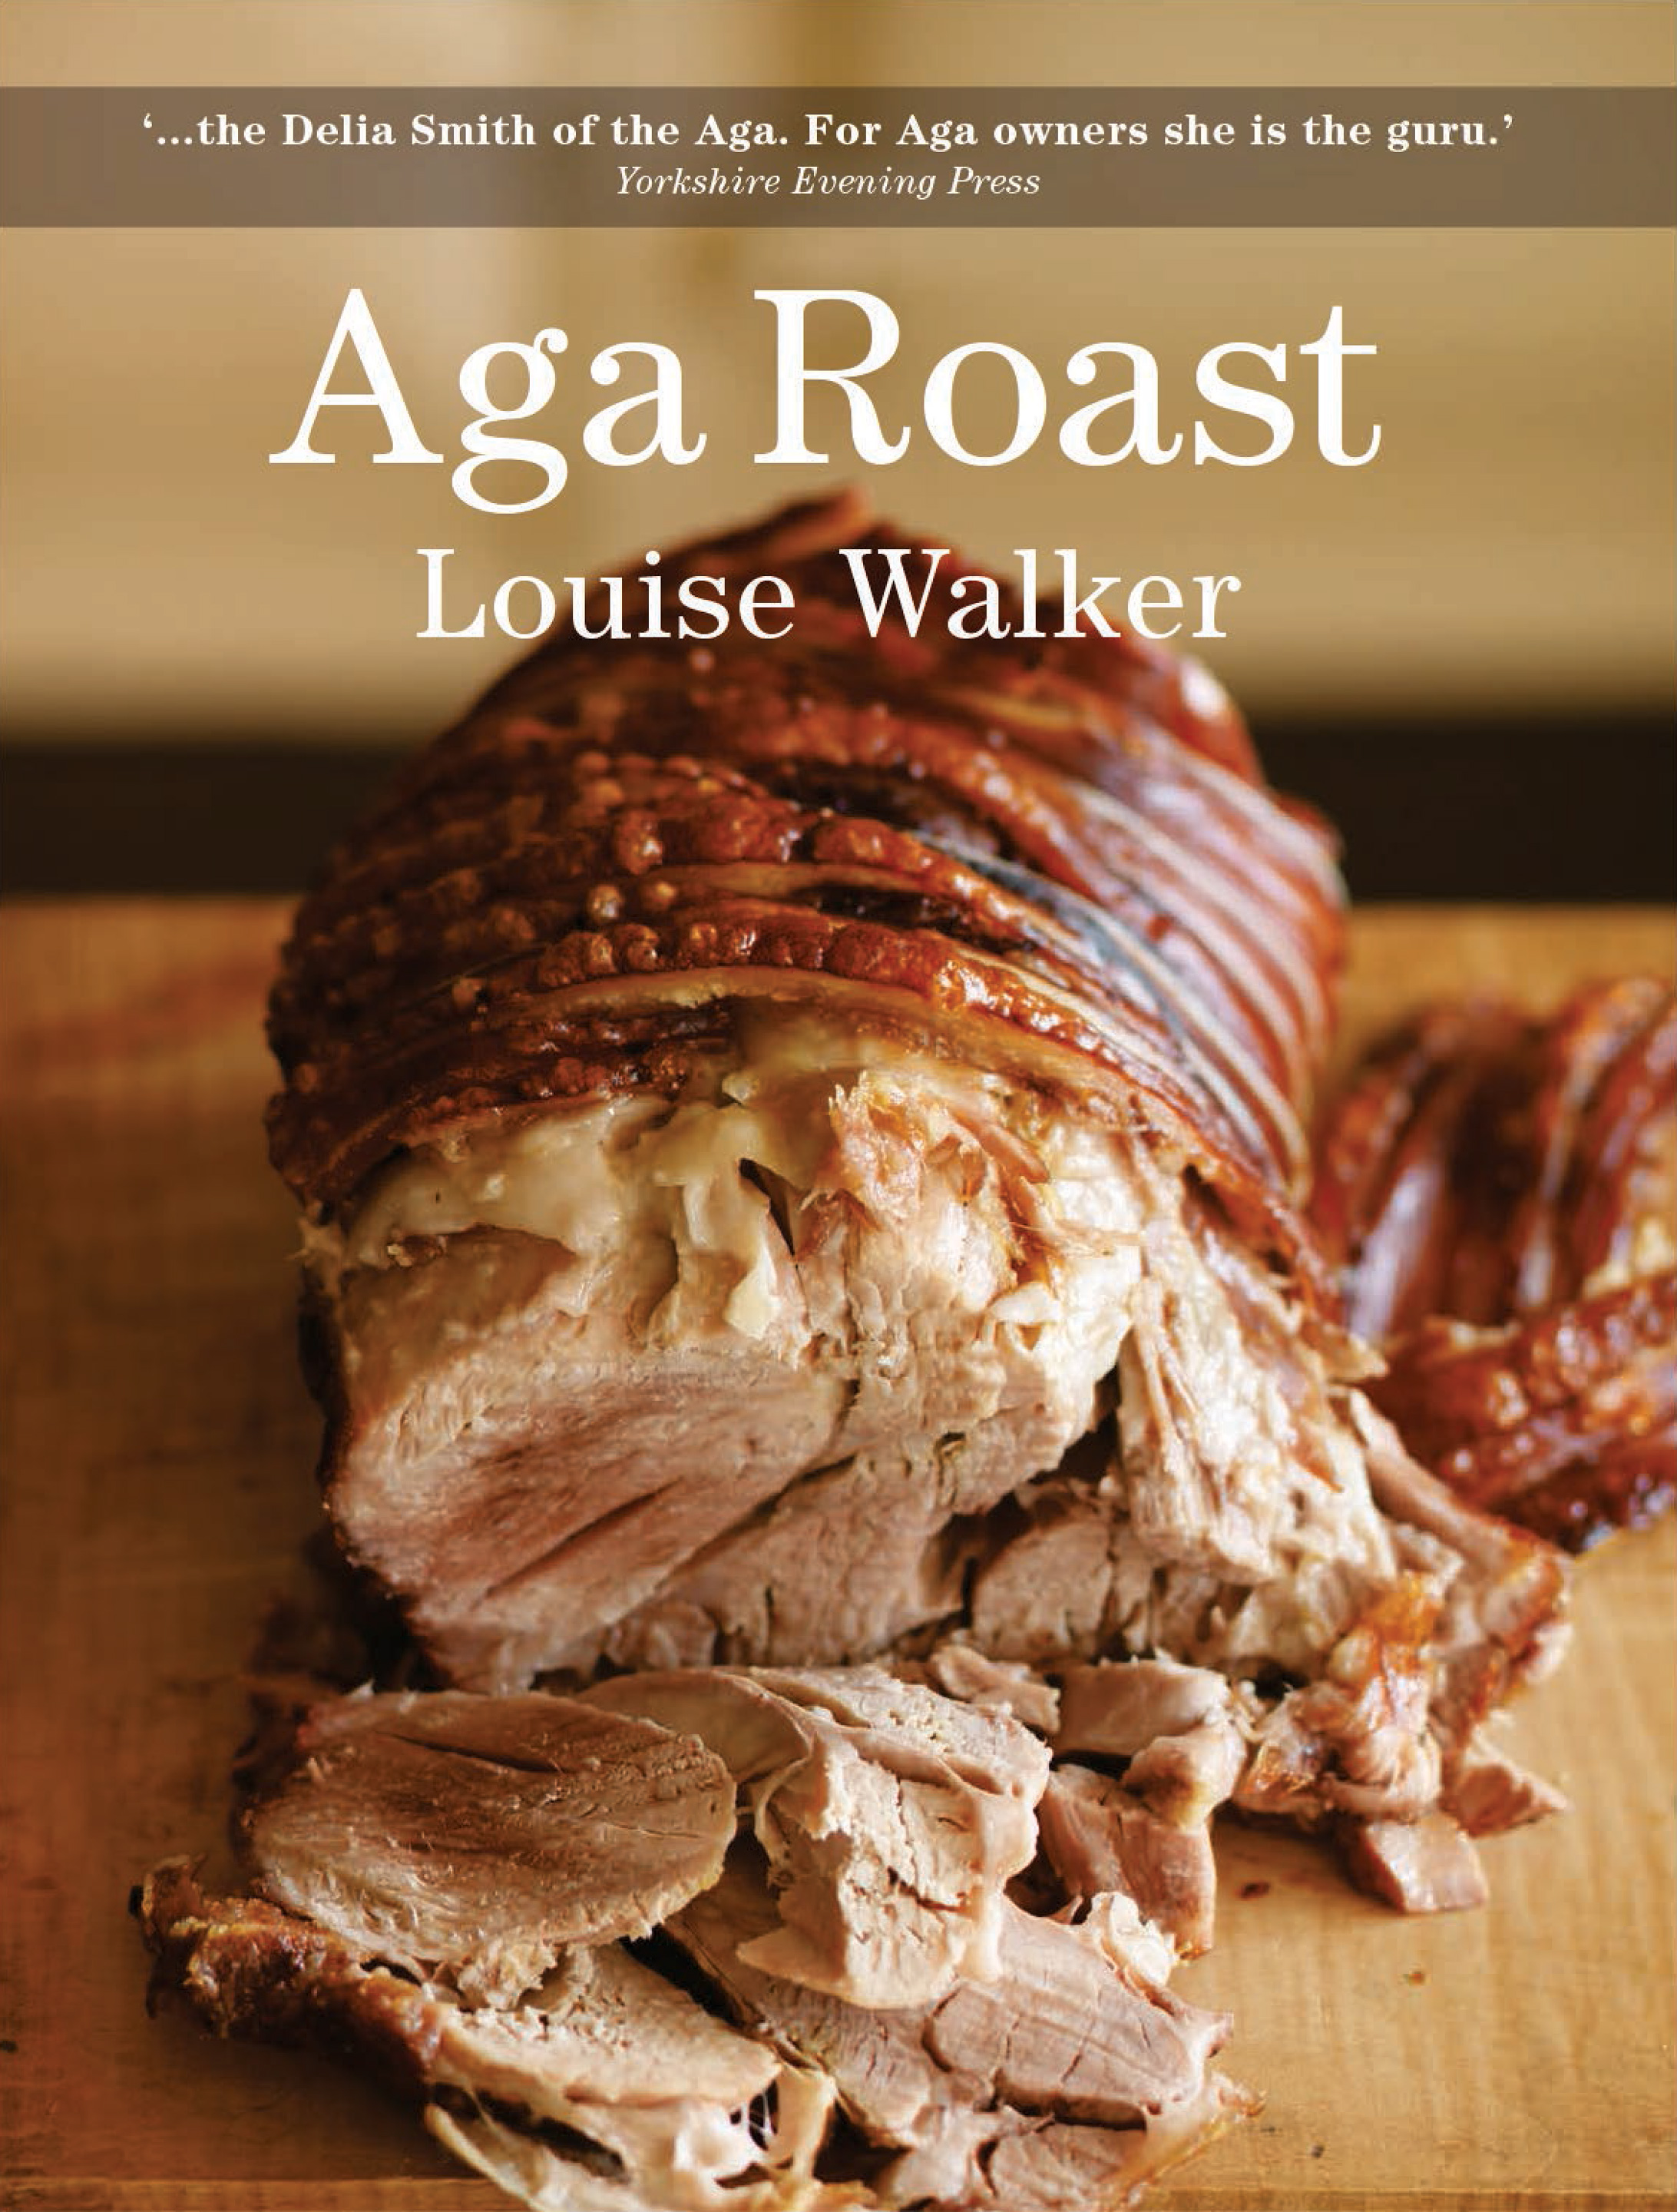 Quince-glazed leg of lamb